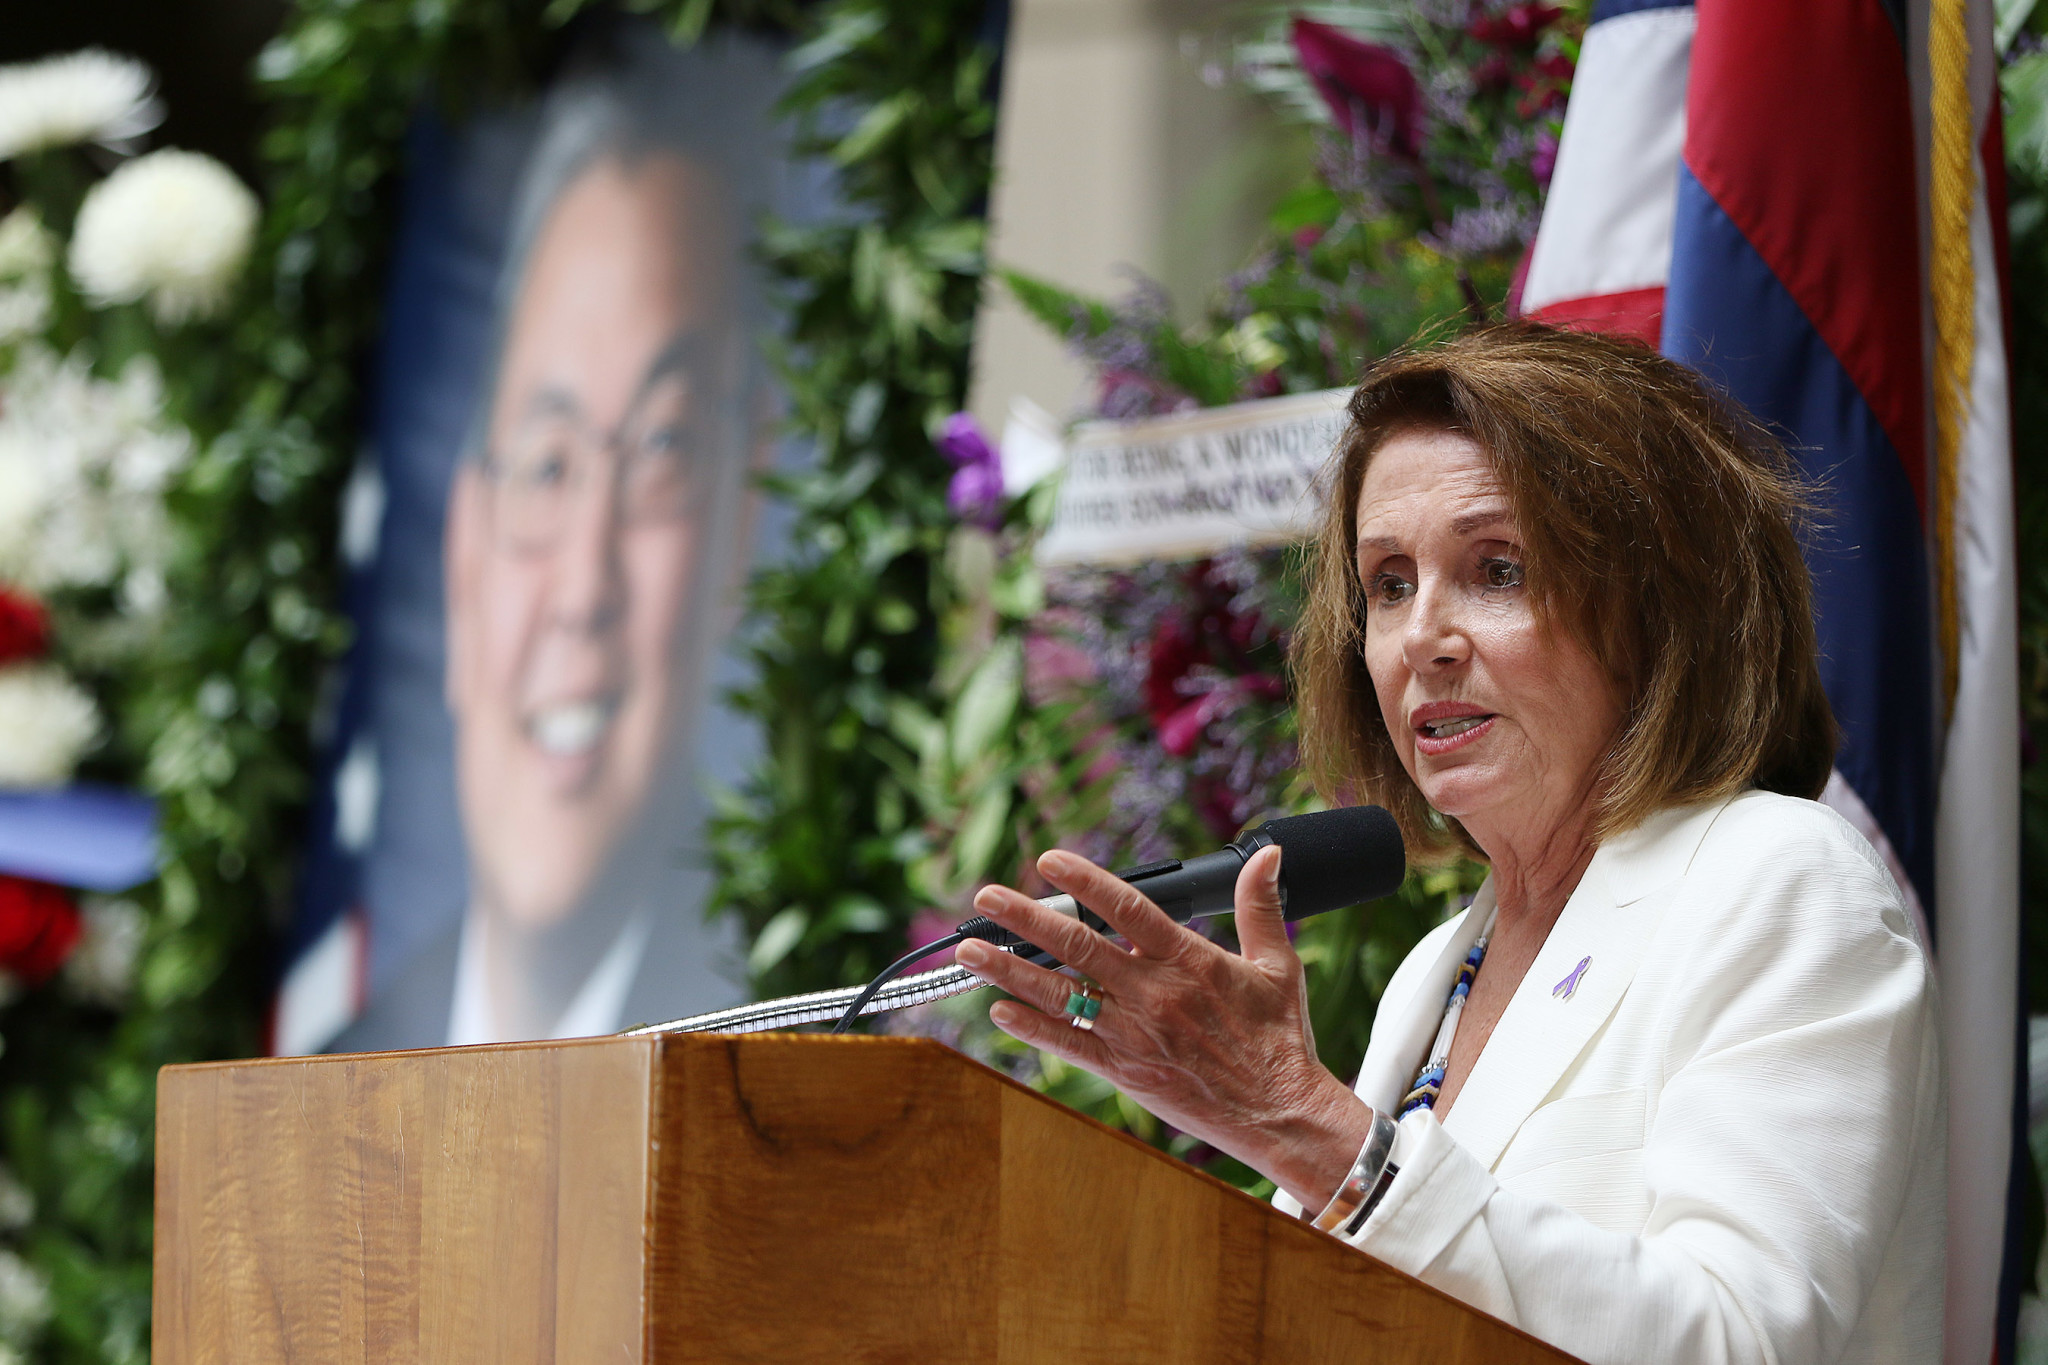 <p>U.S. House Minority Leader Nancy Pelosi spoke warmly of Takai. &#8220;It was only 18 months since he was sworn in, but he accomplished so much.&#8221;</p>